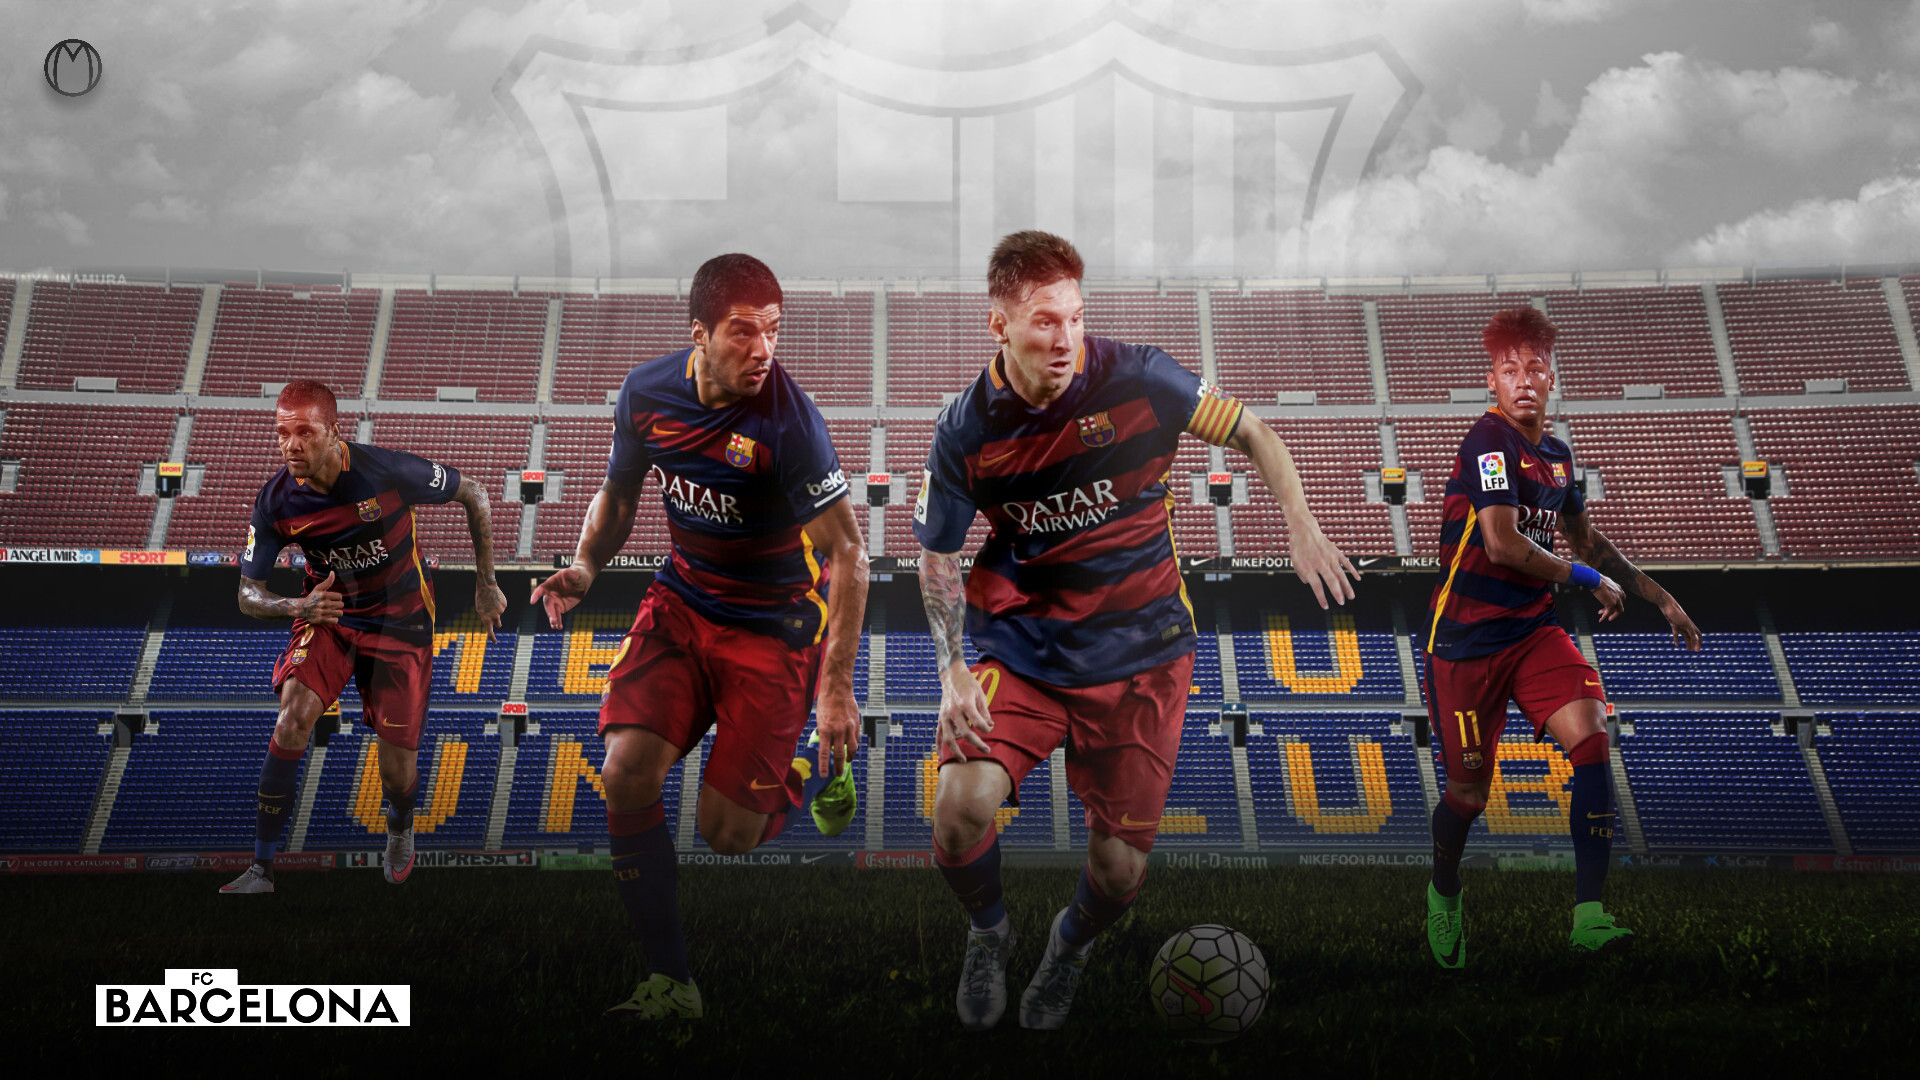 1920x1080 1536x2048 fc barcelona camp nou soccer clubs soccer wallpaper and background